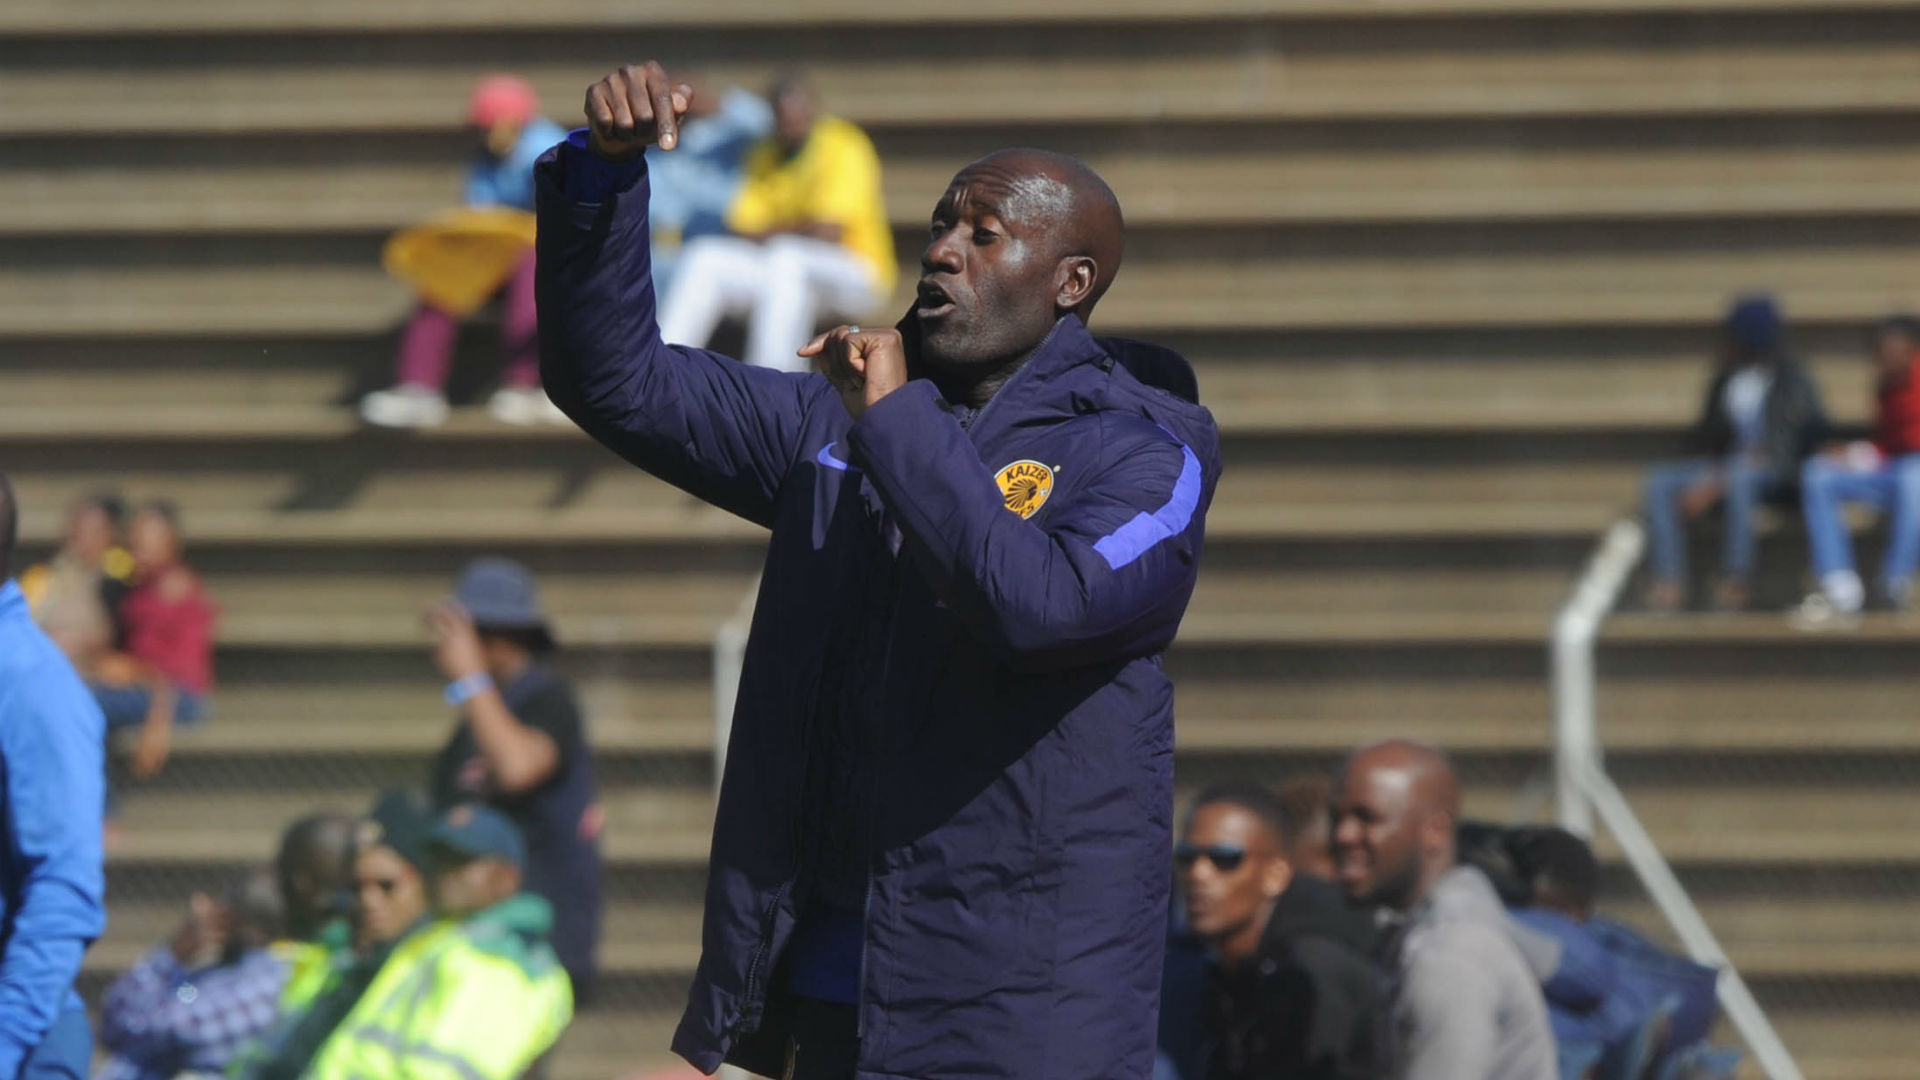 Patrick Mabedi of Kaizer Chiefs